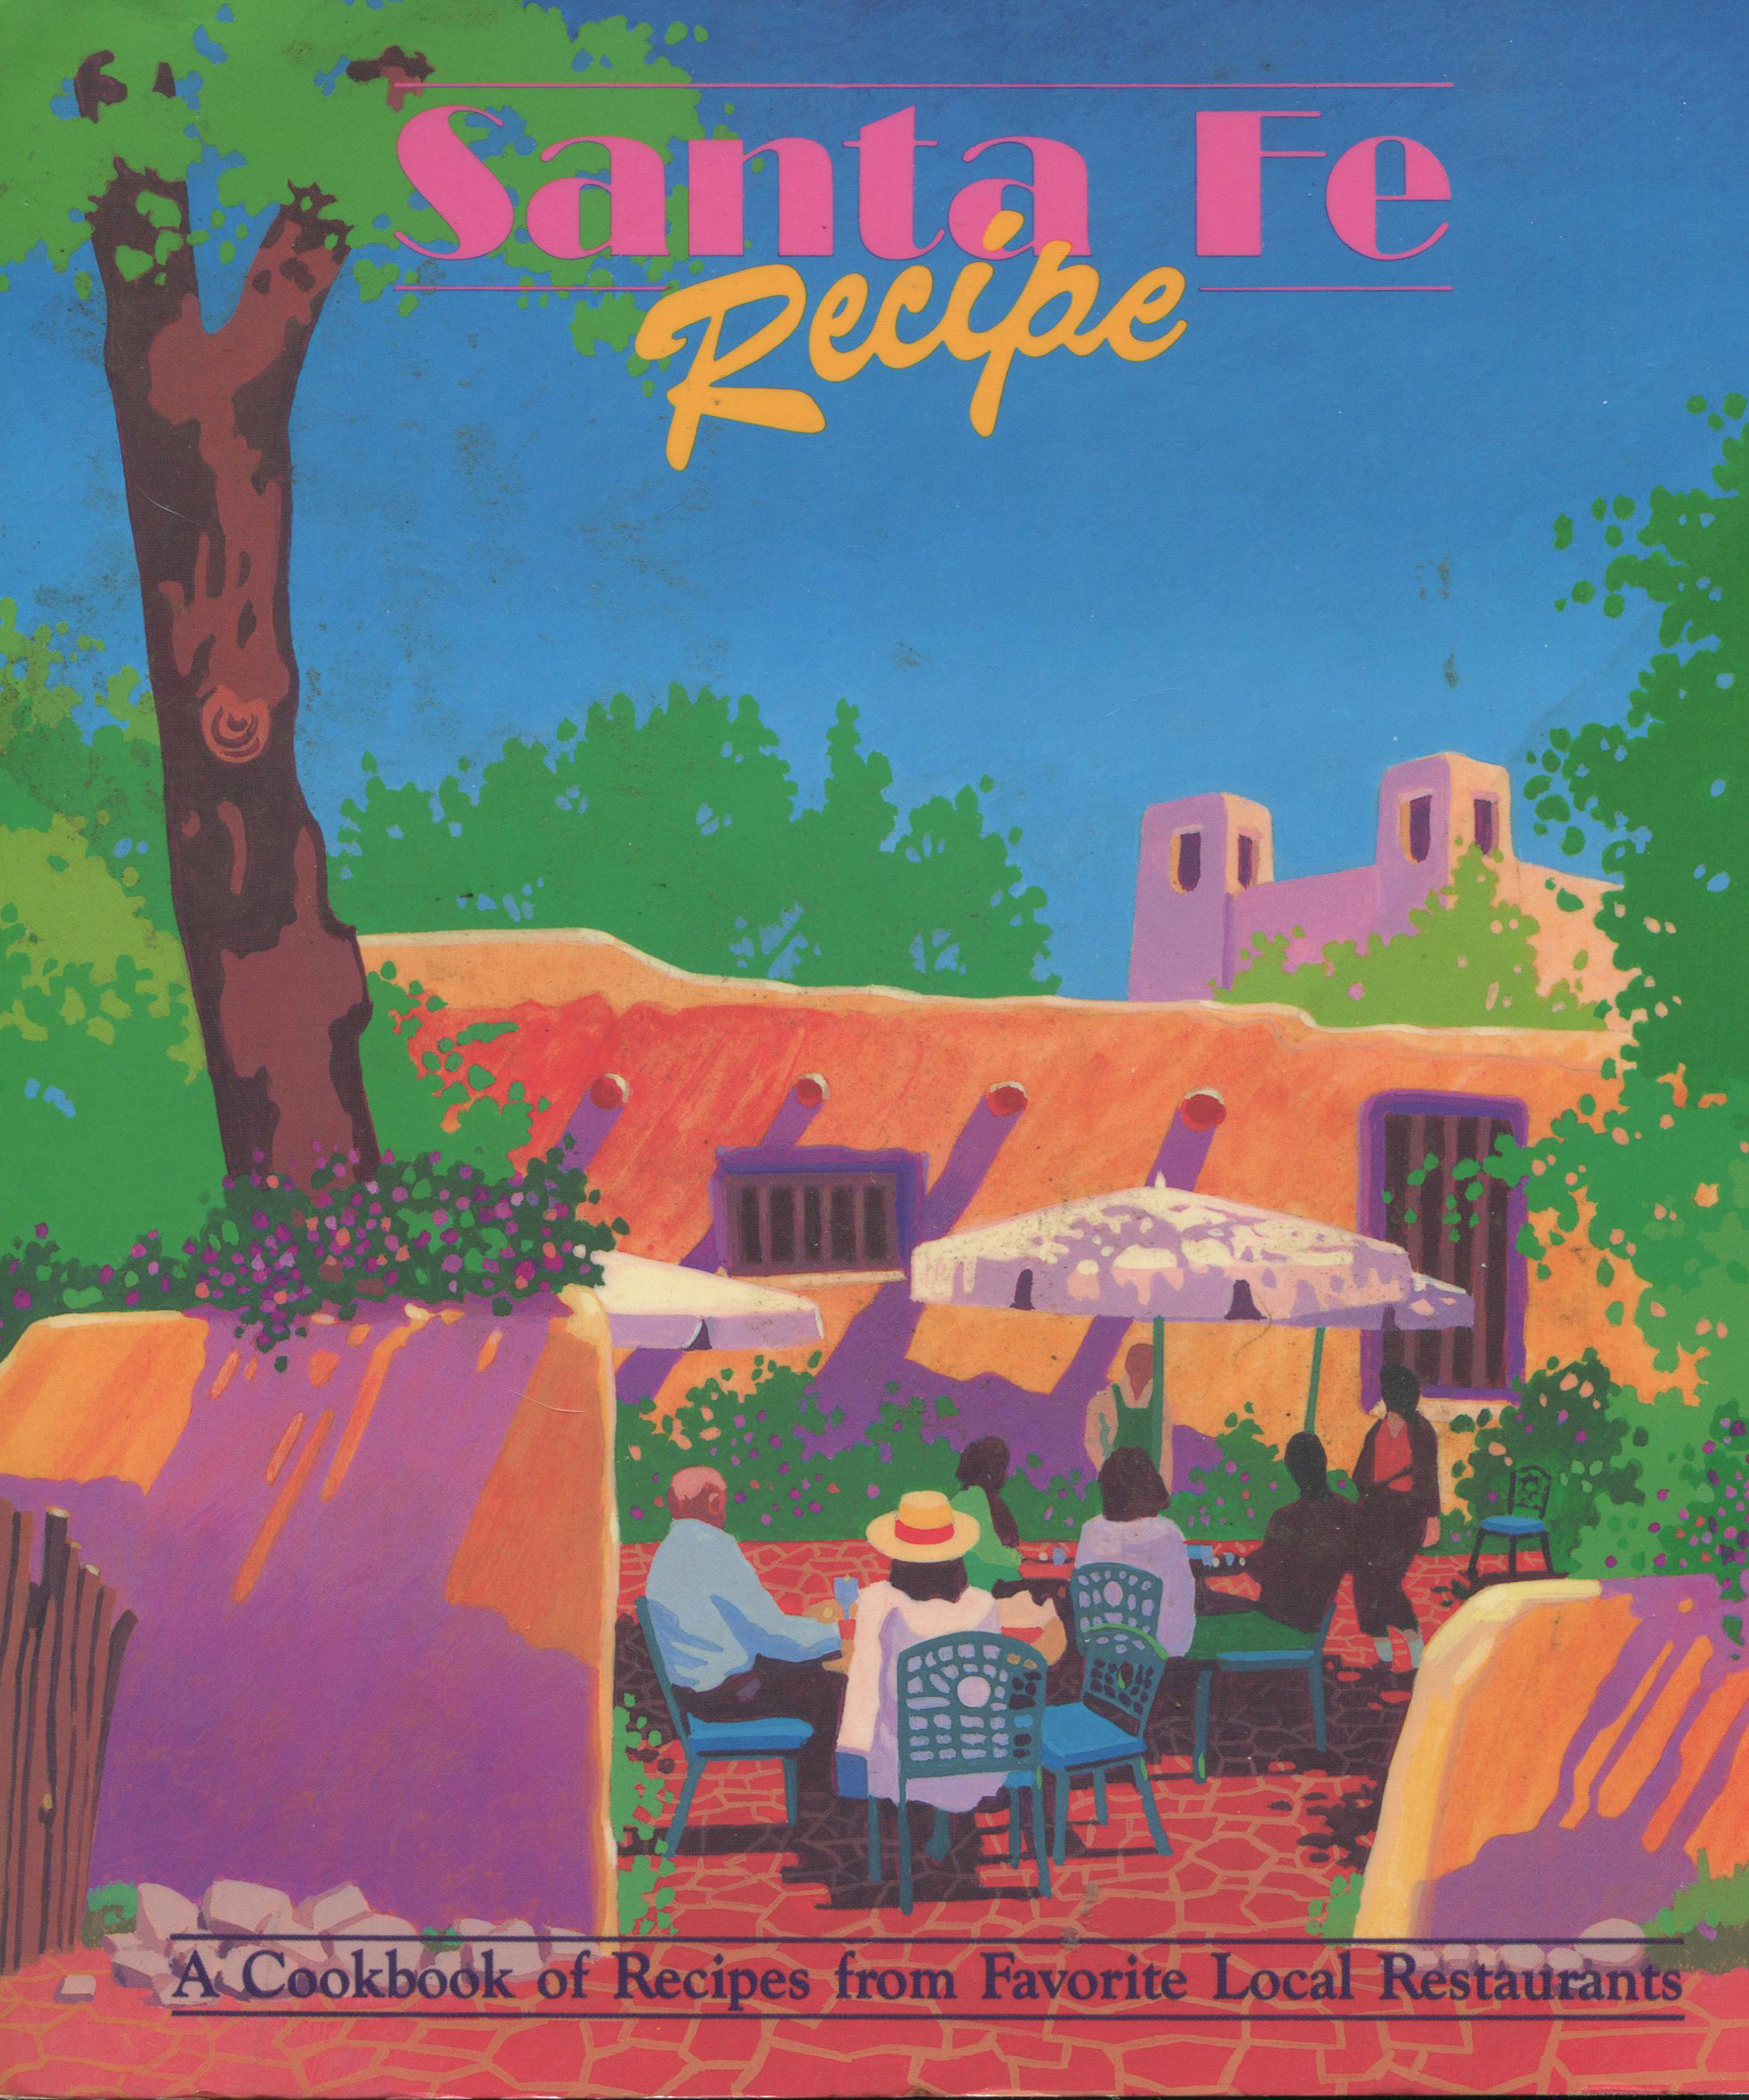 TBT Cookbook Review: Santa Fe Recipe